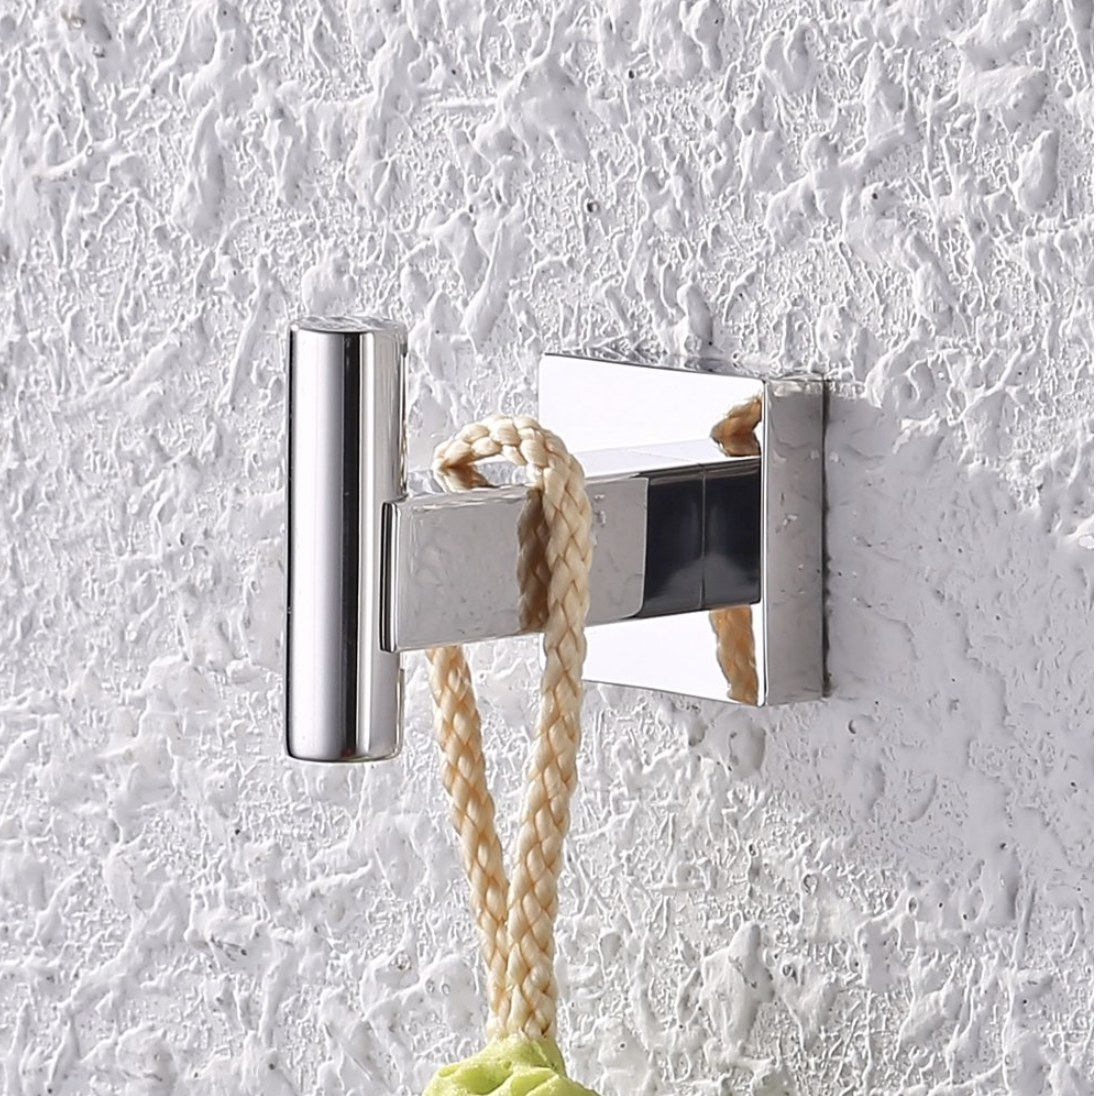 A chrome wall hook installed to a wall holding with a loofah hanging off of it